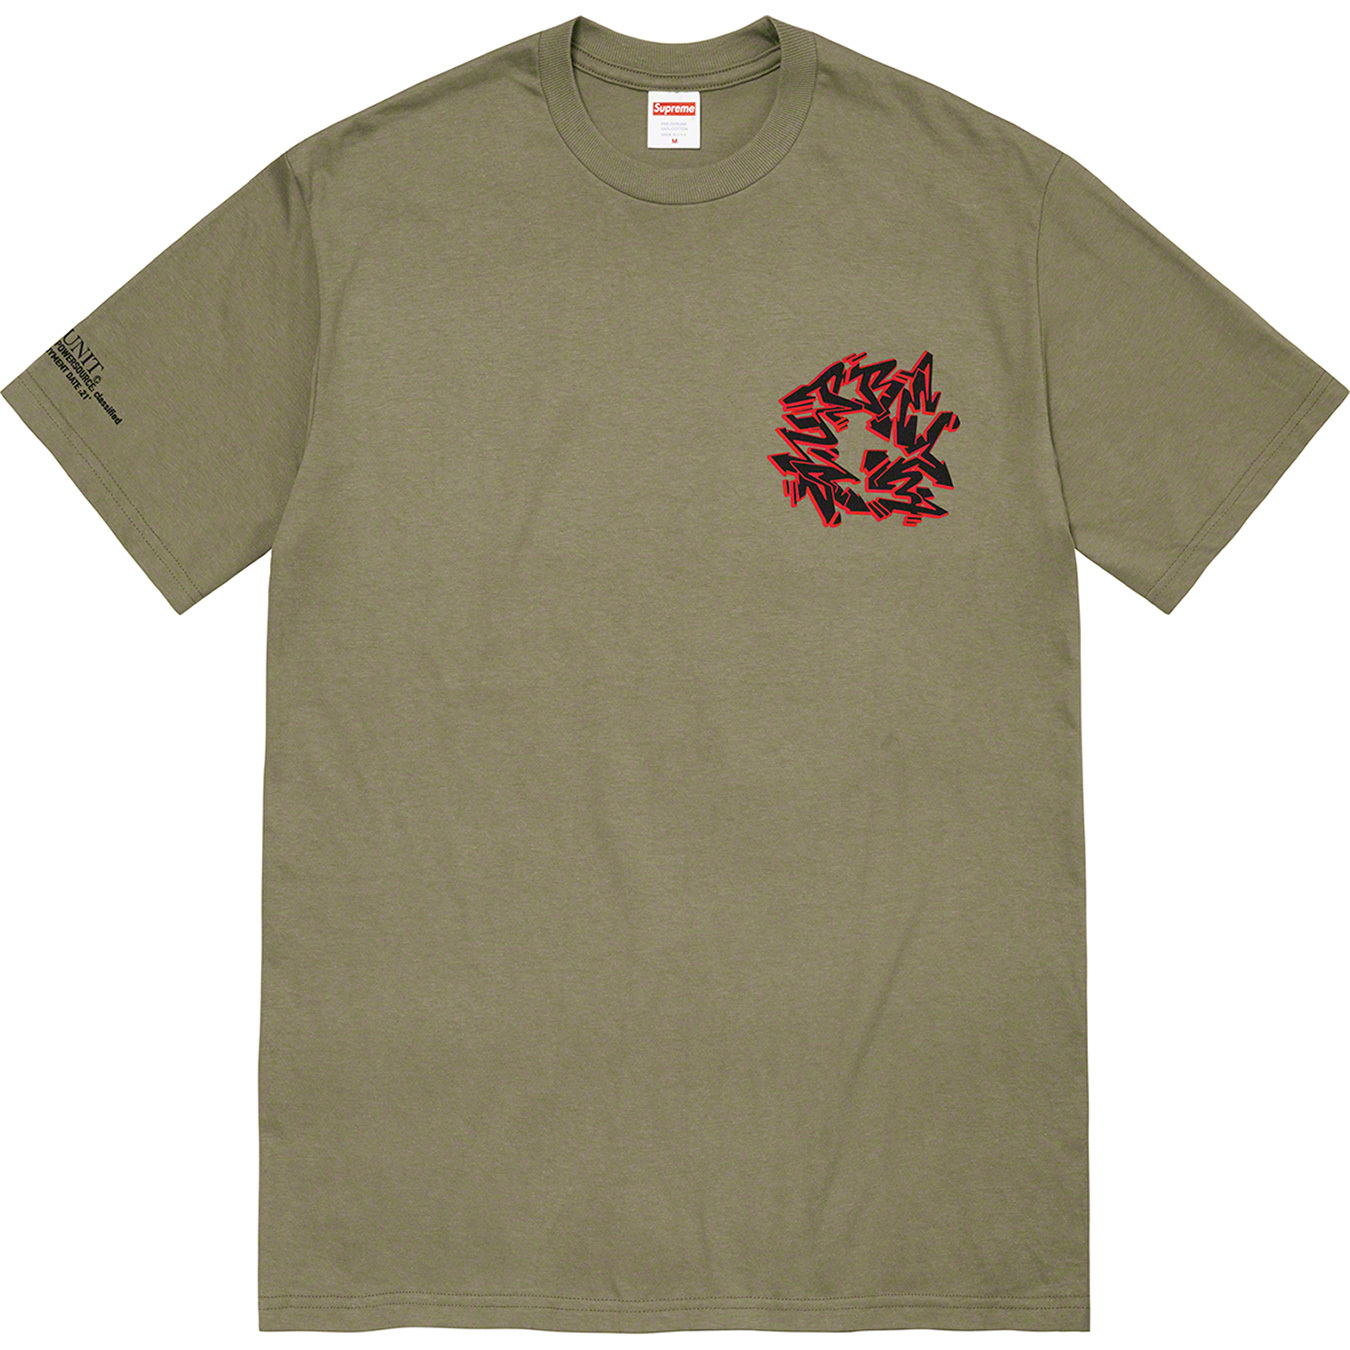 supreme-online-store-20211009-week7-release-items-support-unit-tee